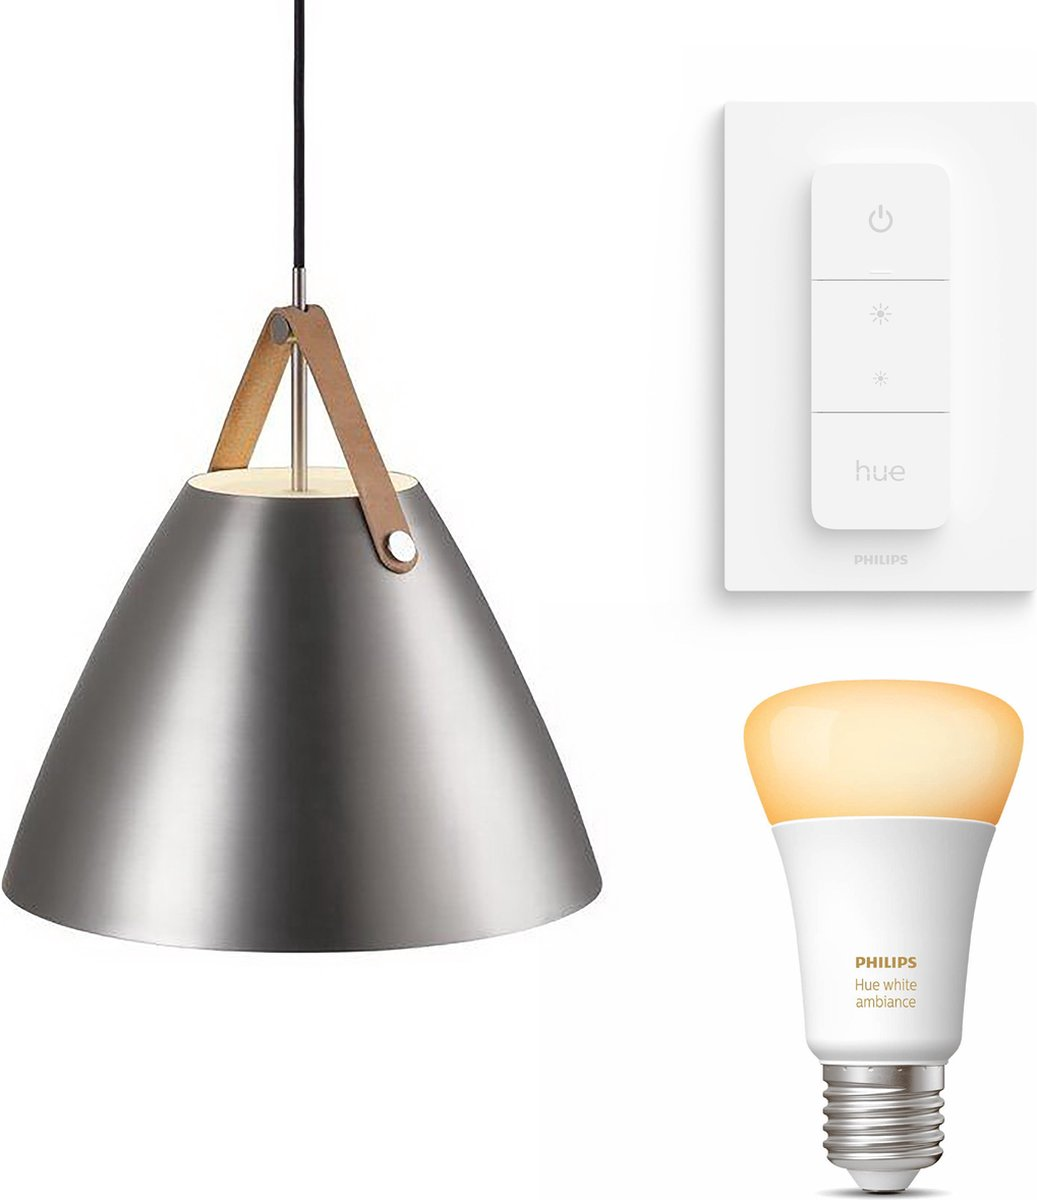 Nordlux Strap 36 hanglamp - LED - mat chroom - 1 lichtpunt - Incl. Philips Hue White Ambiance E27 & dimmer